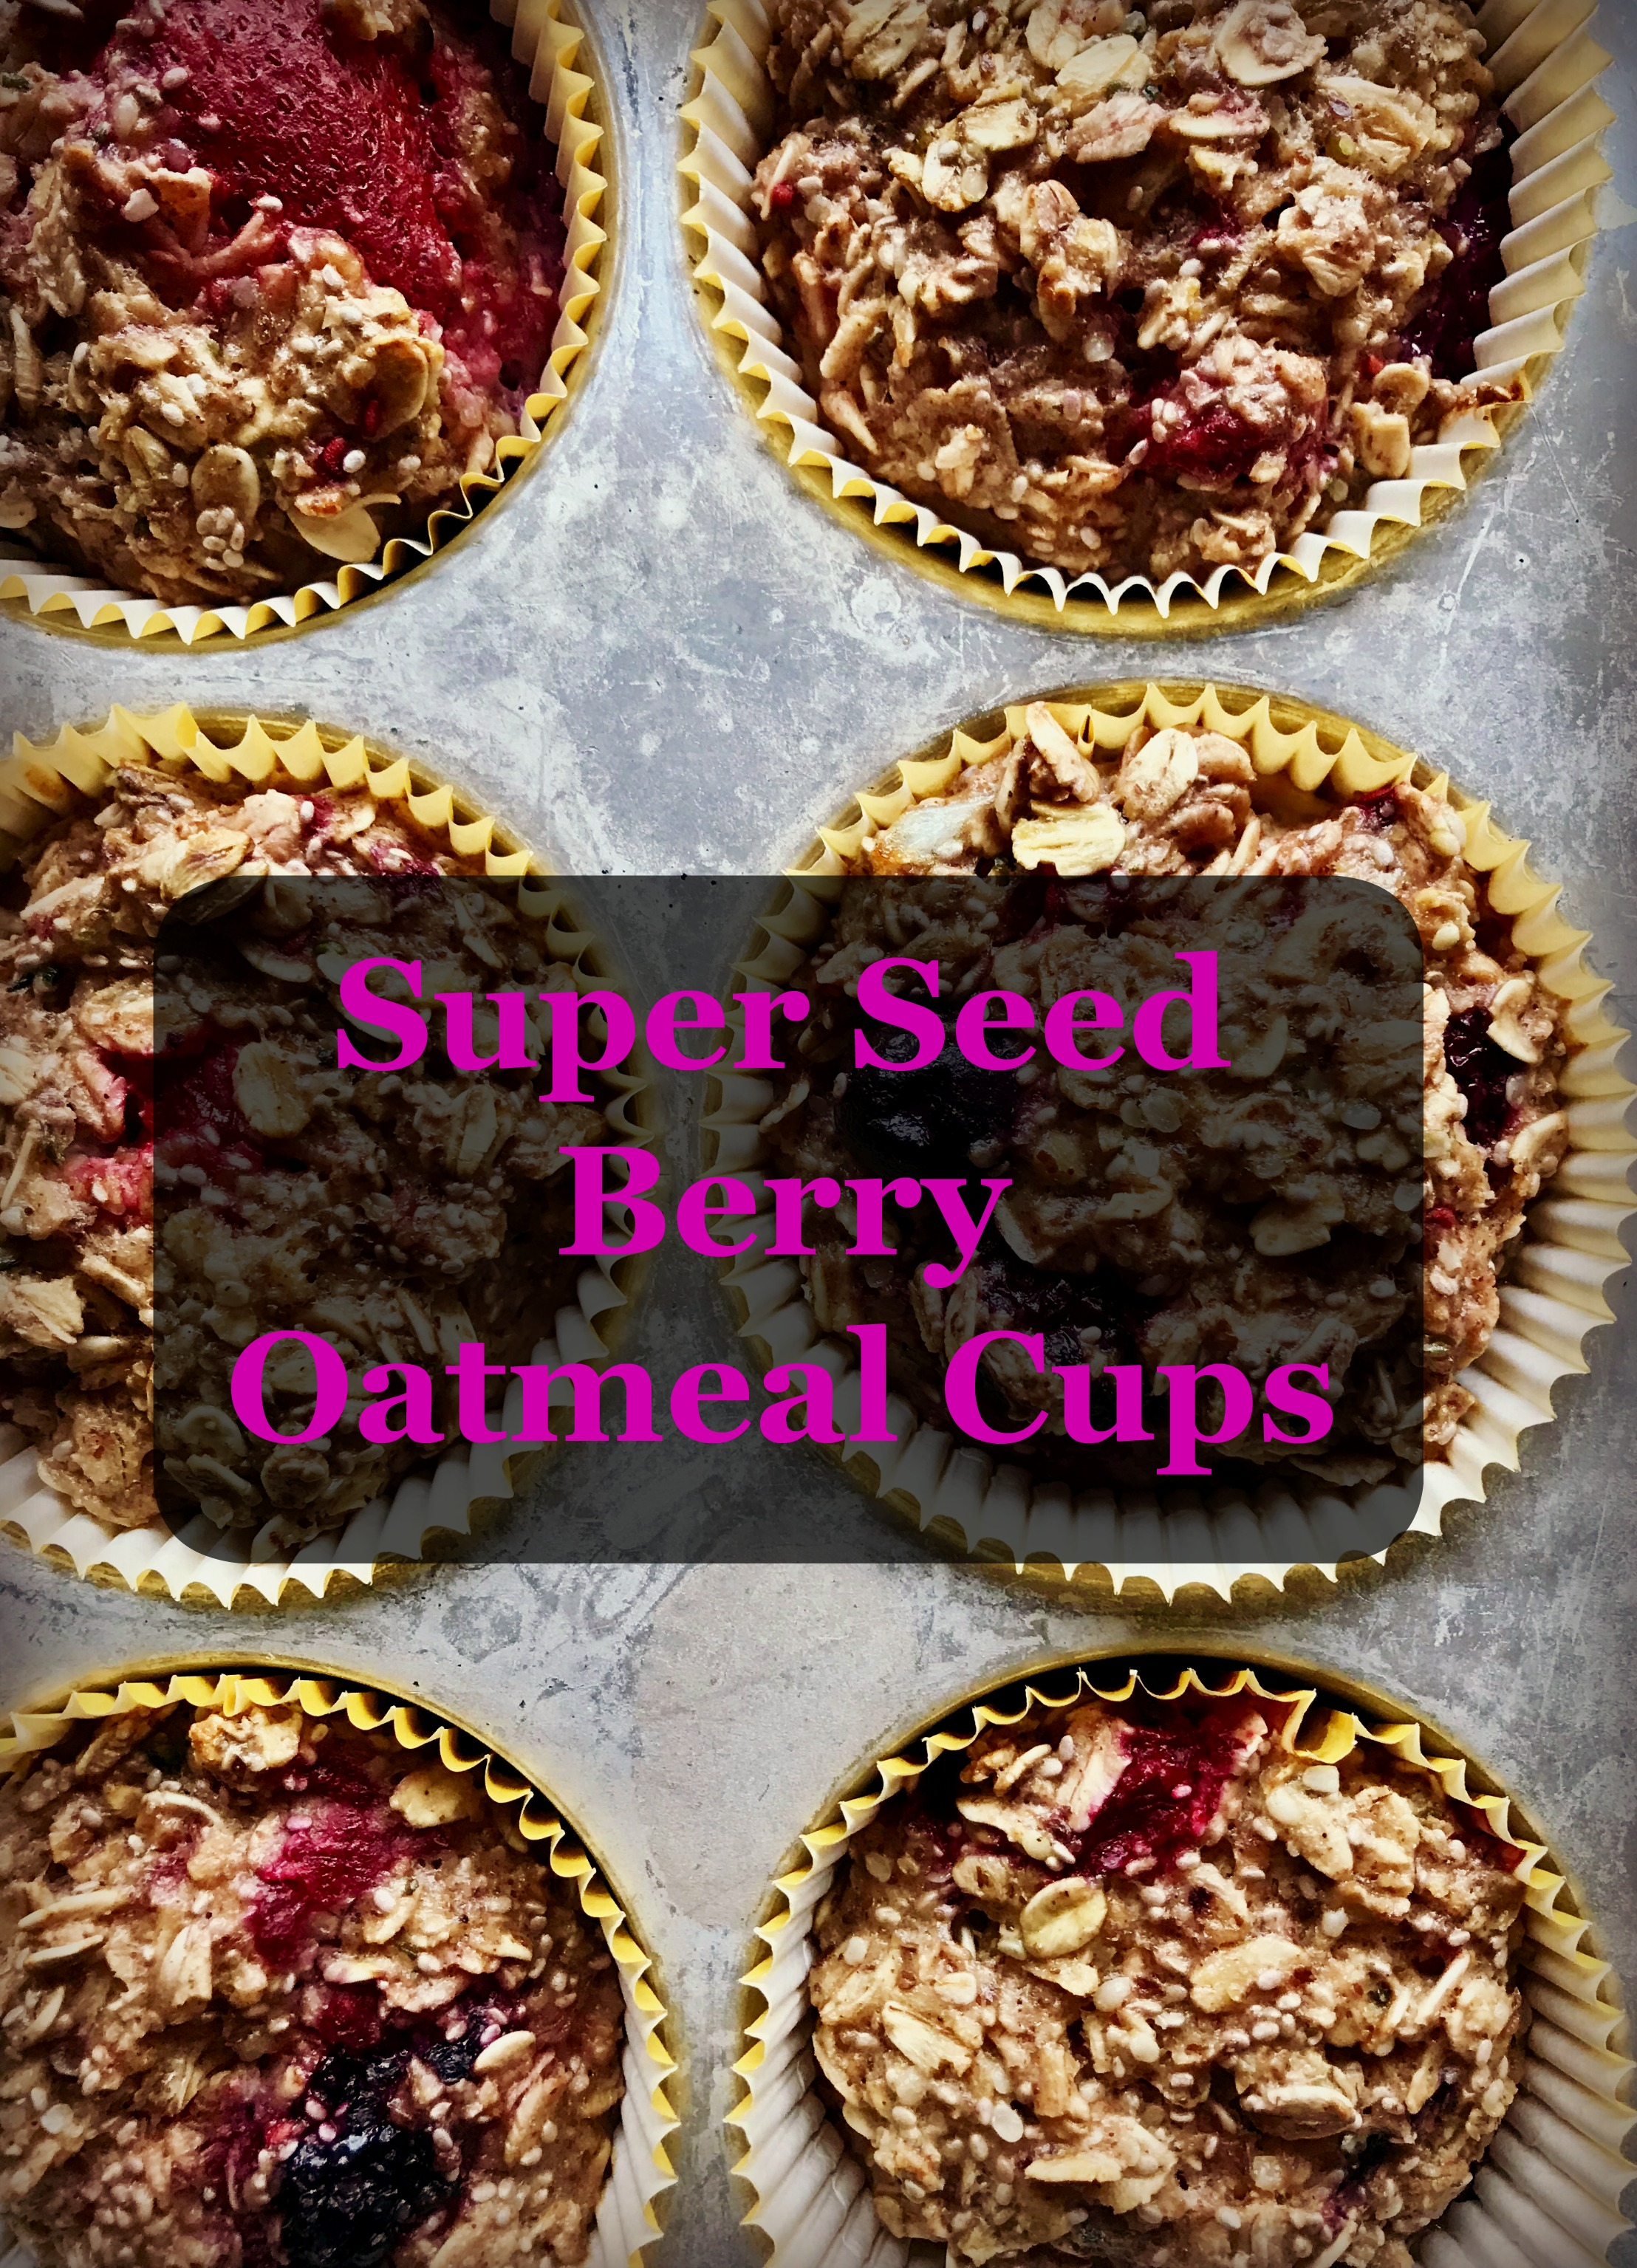 Meal Prep Must-Try: Super Seed Berry Oatmeal Cups